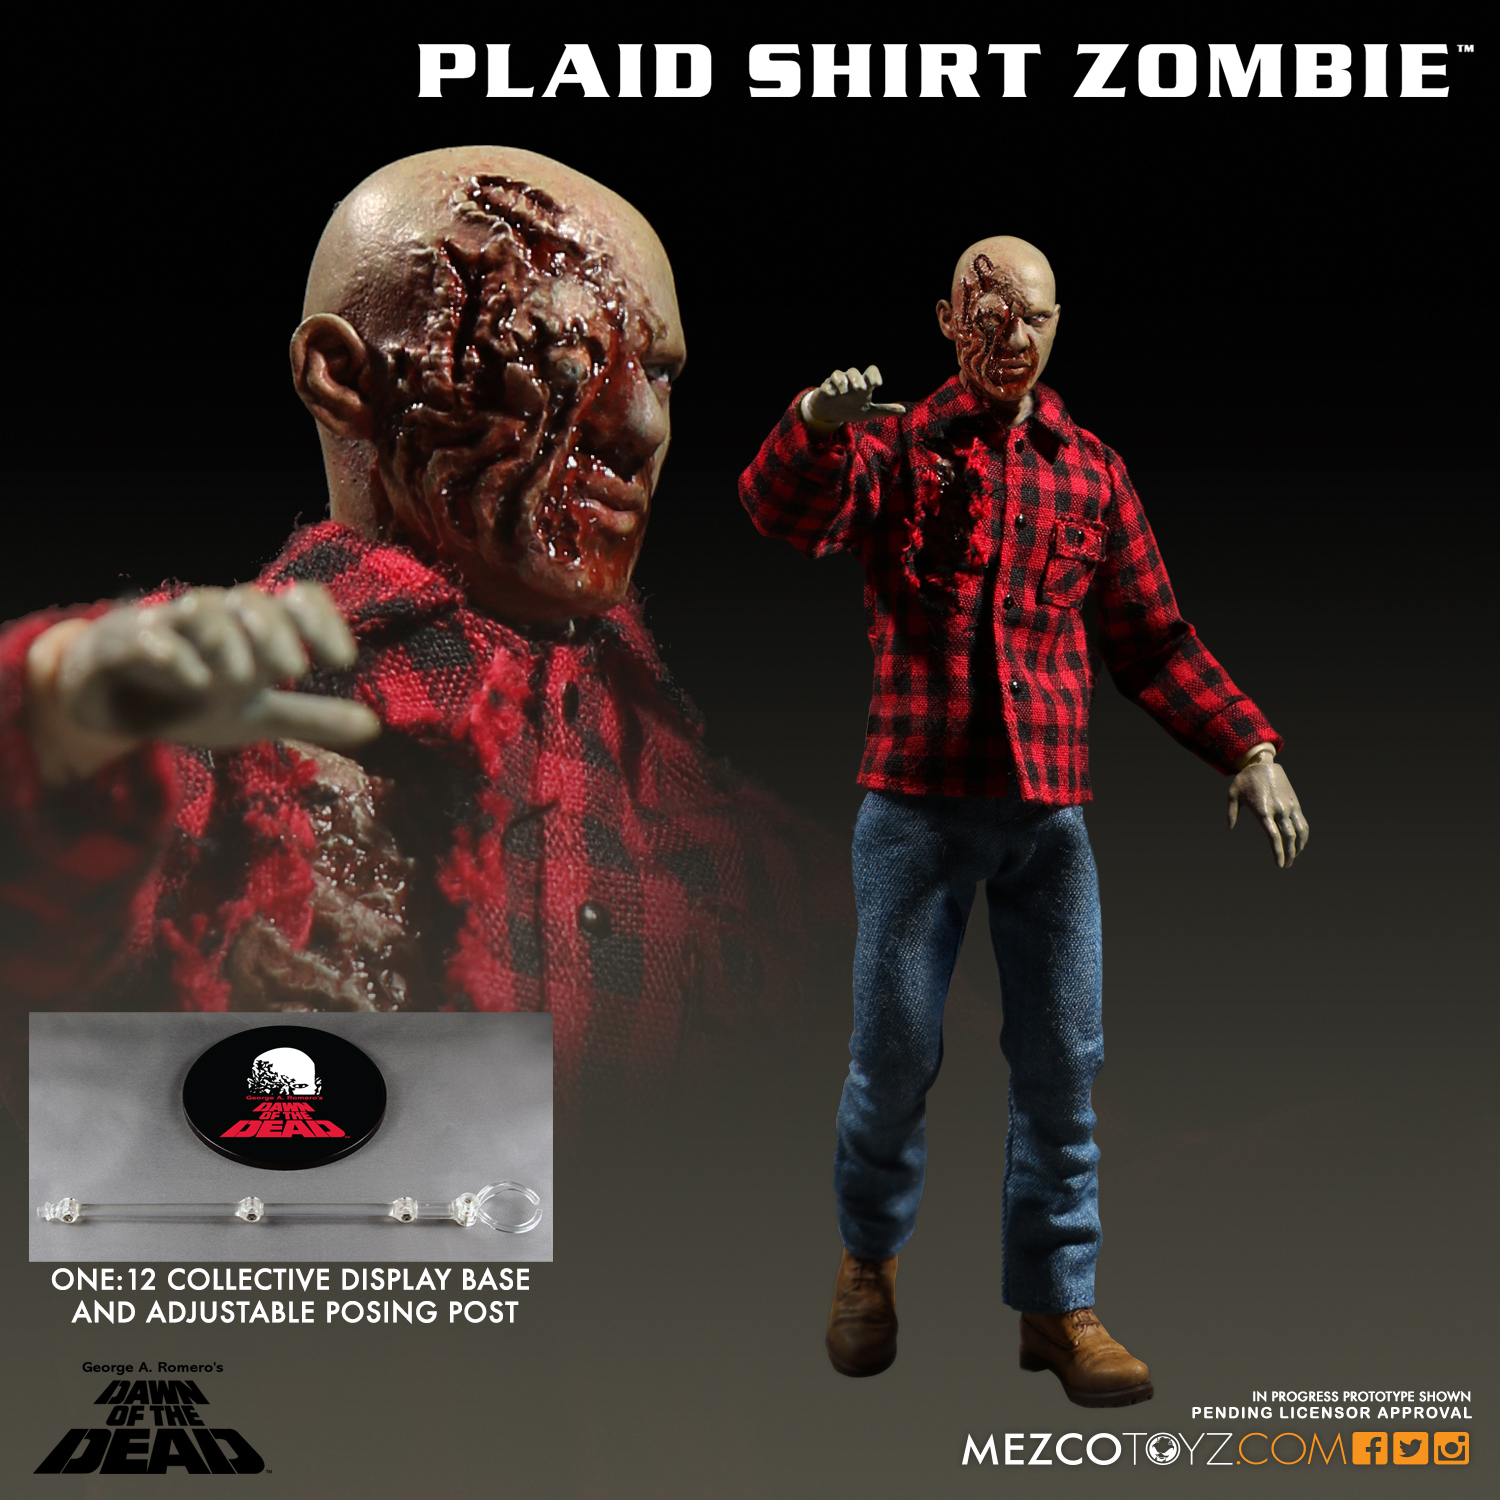 Mezco 2017 One:12 Dawn of Dead Plaid